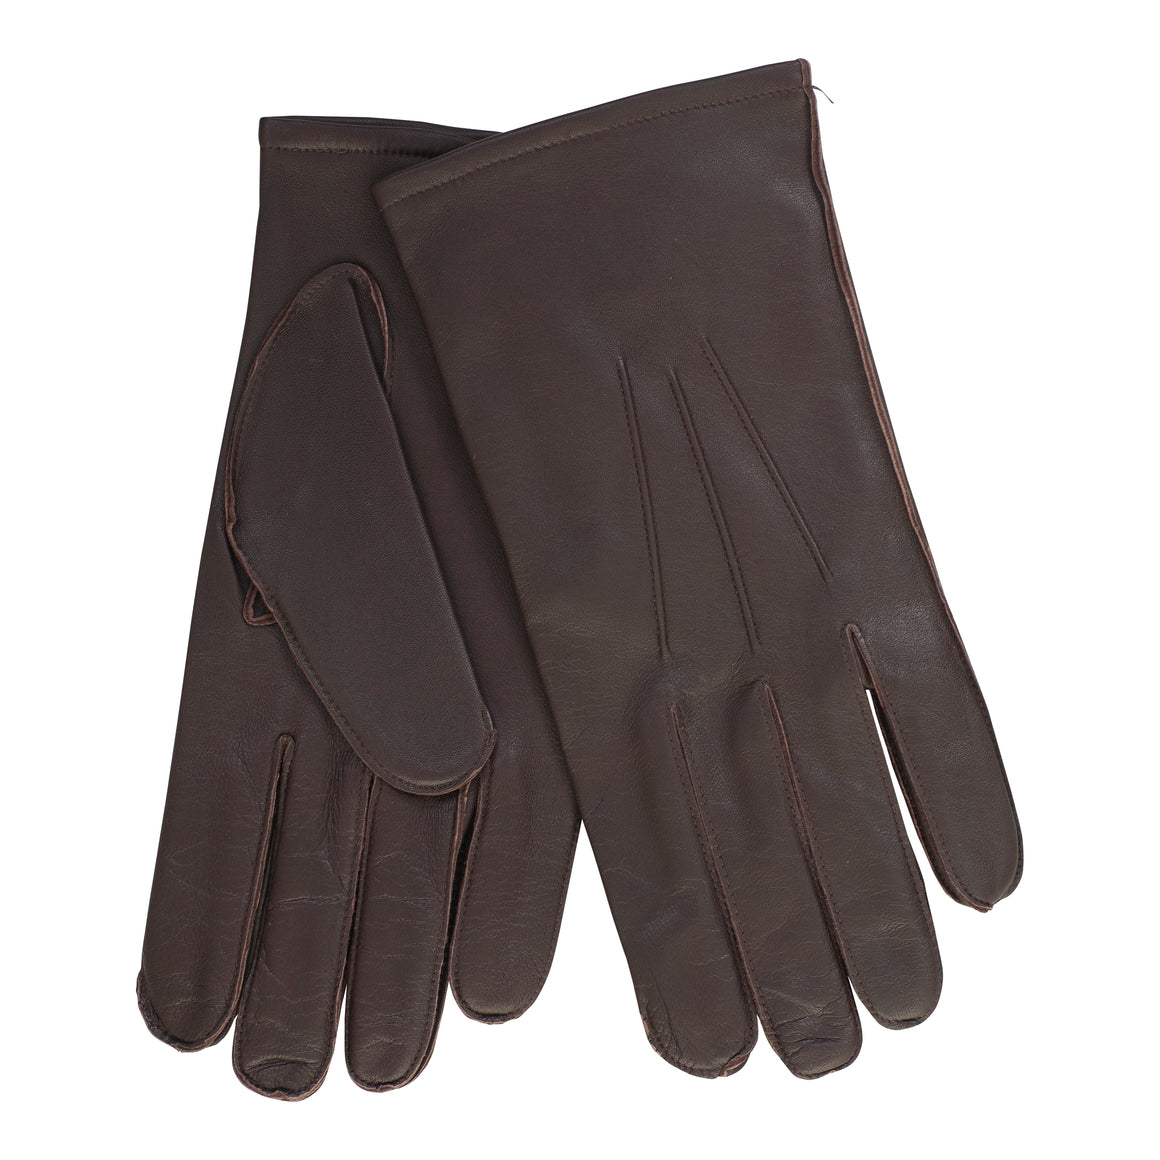 Leather Wool Mix Gloves for Men in Brown